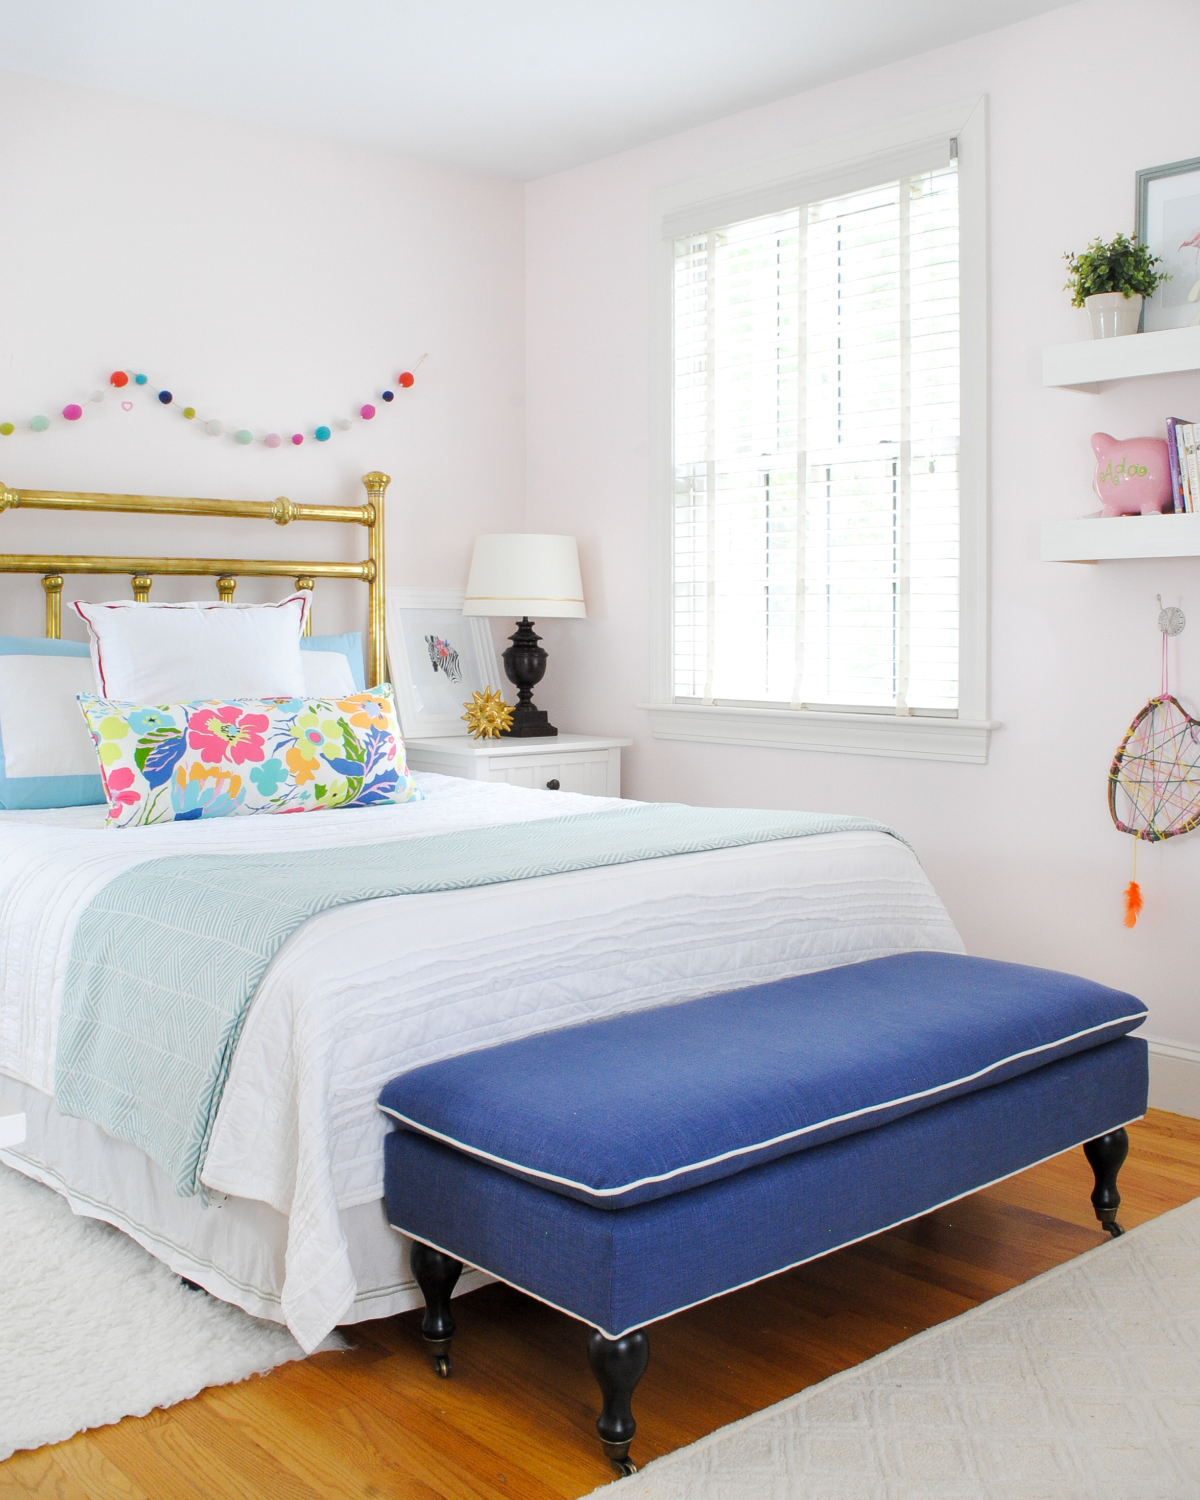 Big Girl Bedroom Update - New Mattress and Bedding - The ... on Beautiful Rooms For Girls  id=82019